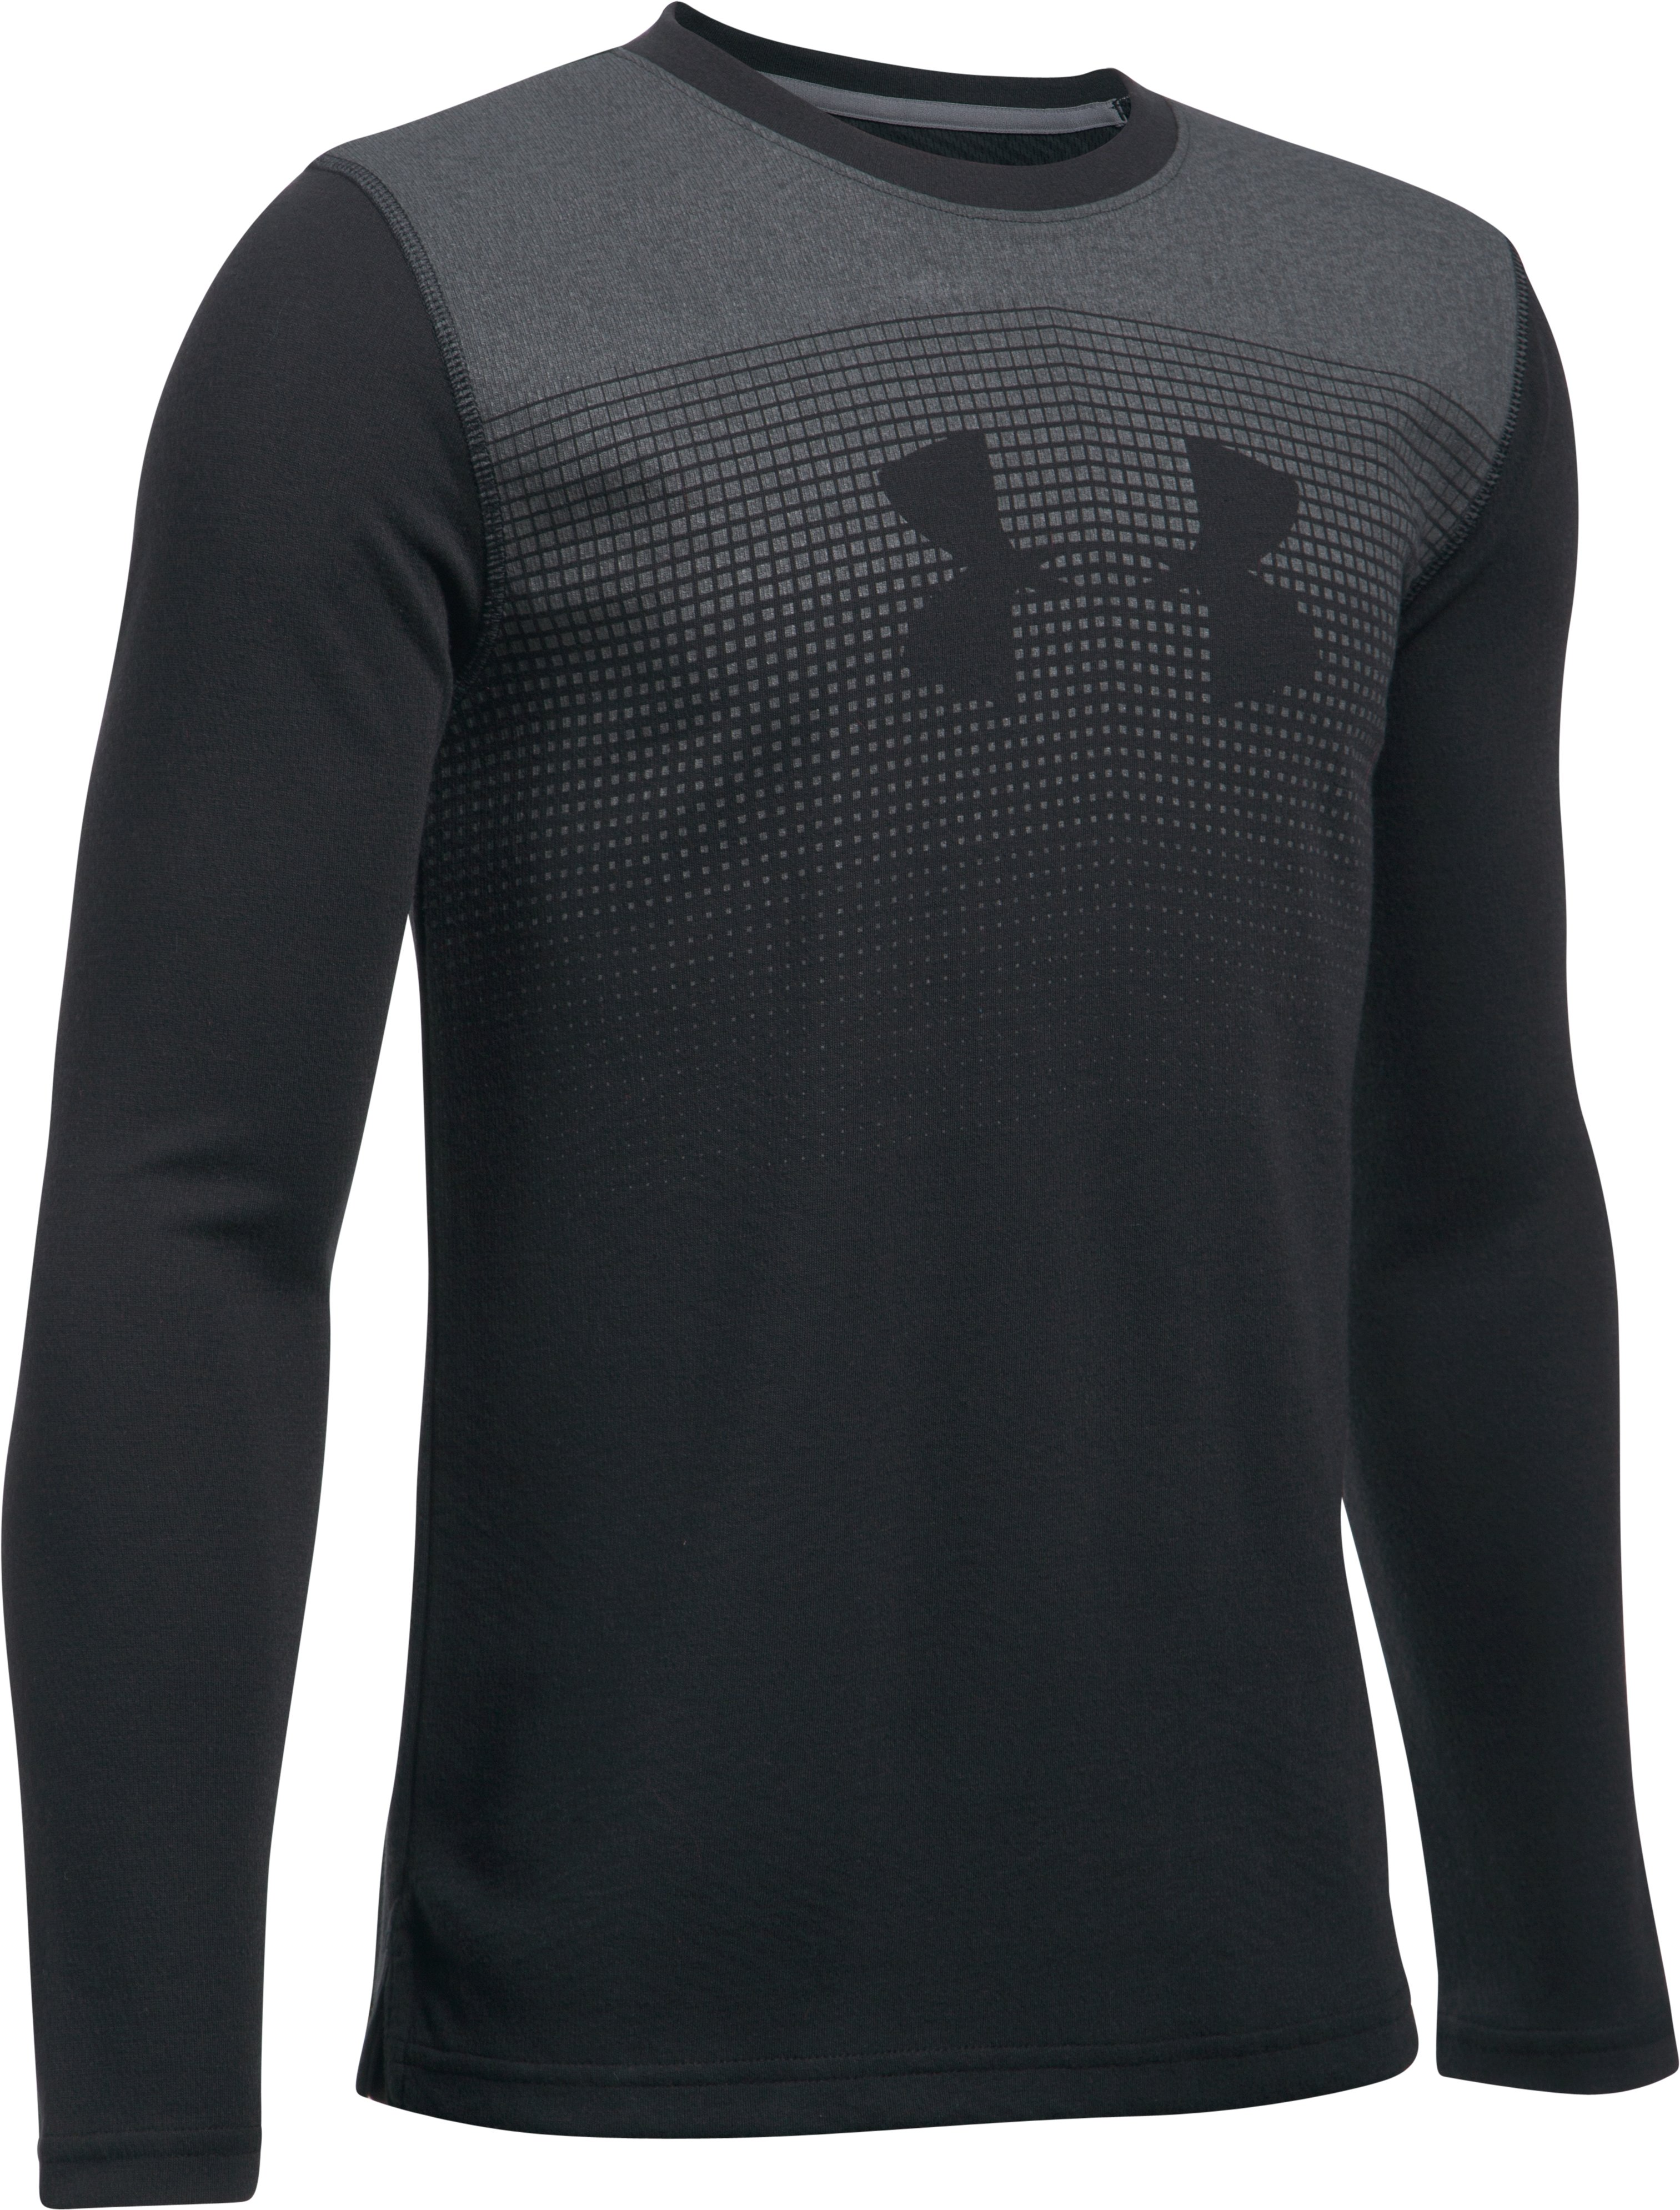 Boys' ColdGear® Infrared Long Sleeve, Black